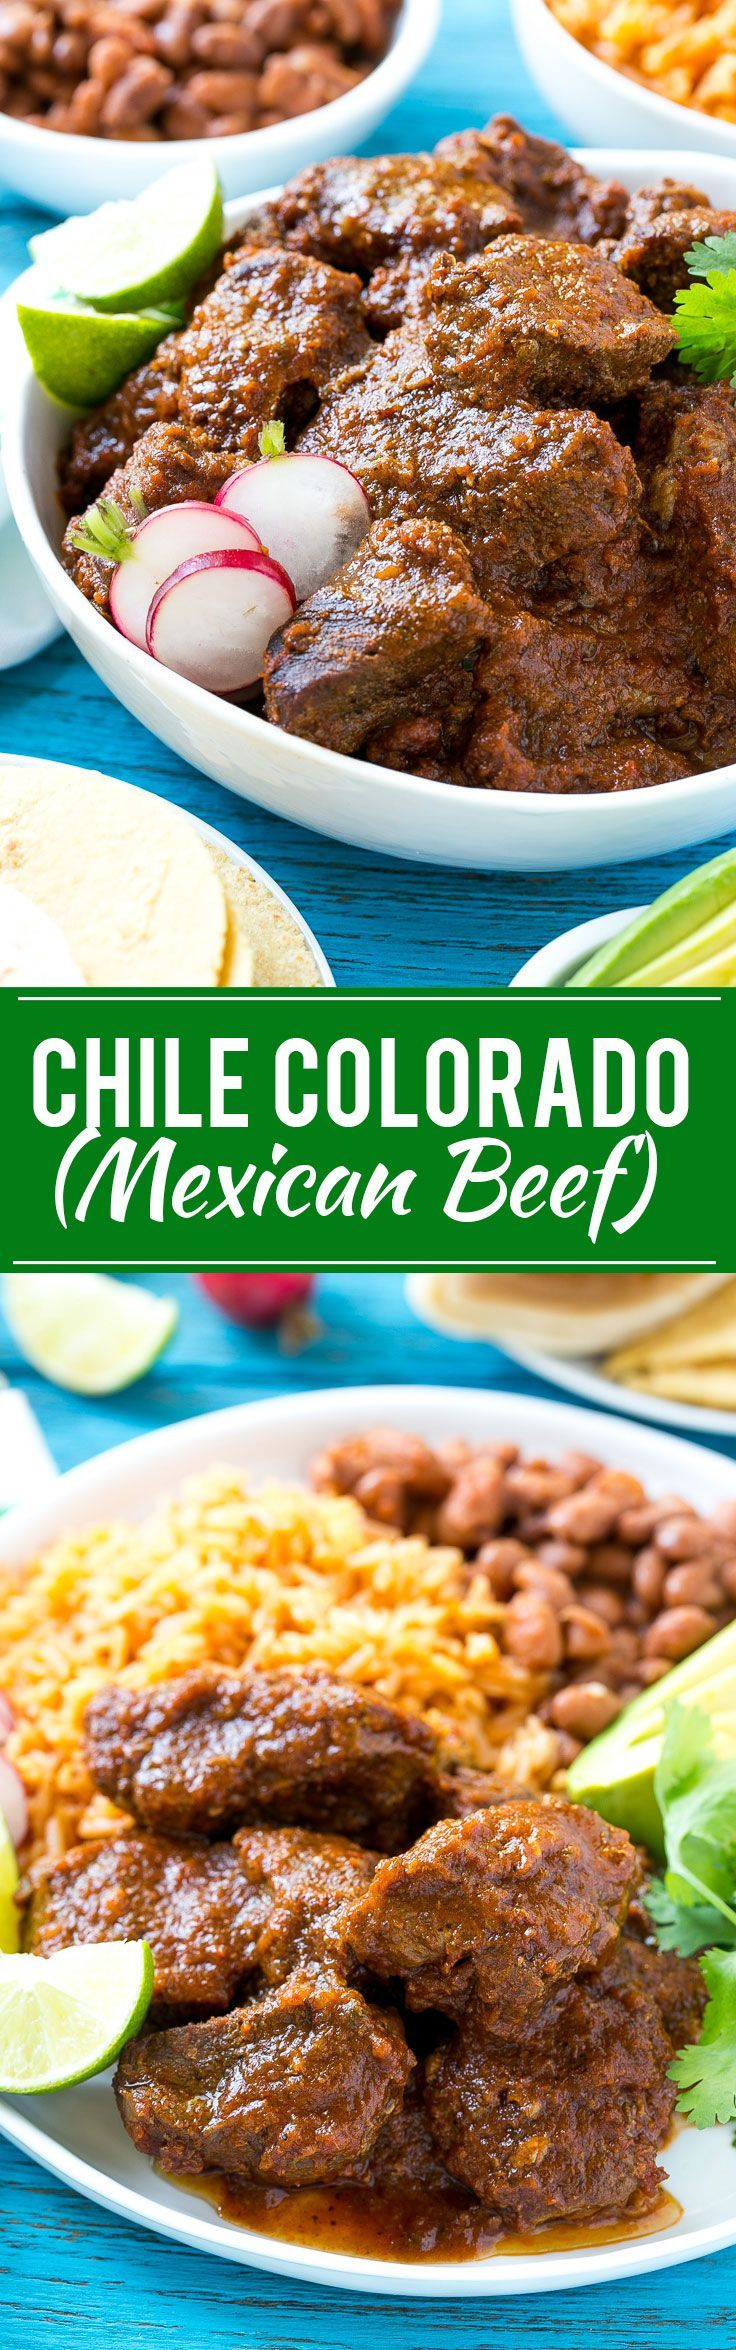 This recipe for chile colorado is a traditional Mexican dish made with tender beef that's been slow cooked in a flavorful tomato sauce. It's the perfect filling for burritos, enchiladas and tacos!